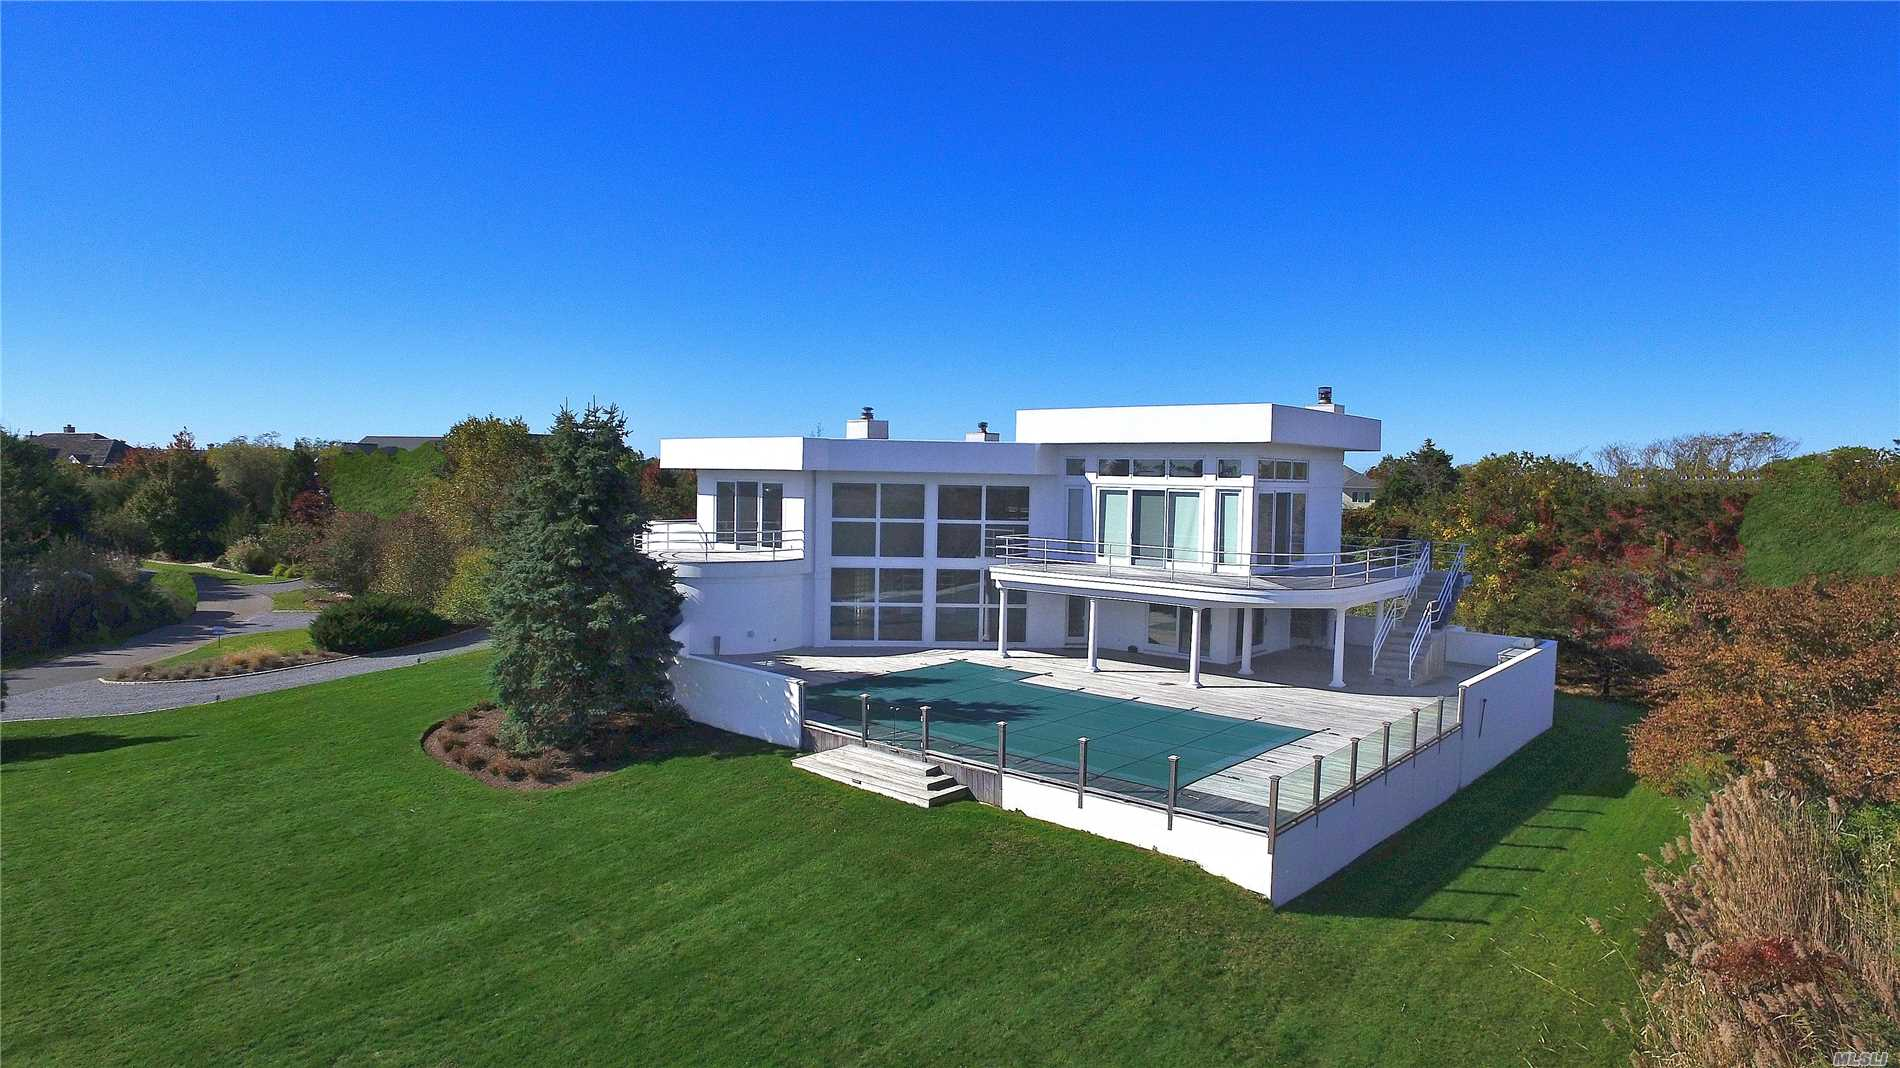 3.3 Acre Modern Masterpiece. 1st Floor W 5 Bed, 4 & 1/2 Baths, Media Room, 2 Car Garage, & Walk Out Decking. 2nd Floor W Open Living Area, Lr, Dr, Kit & 2nd Story Mahogany Decking. Vast Rolling Lawns, Lush Landscaping, Heated Inground Pool, Hot Tub, & Catwalk To The Private Deep Water Dock.